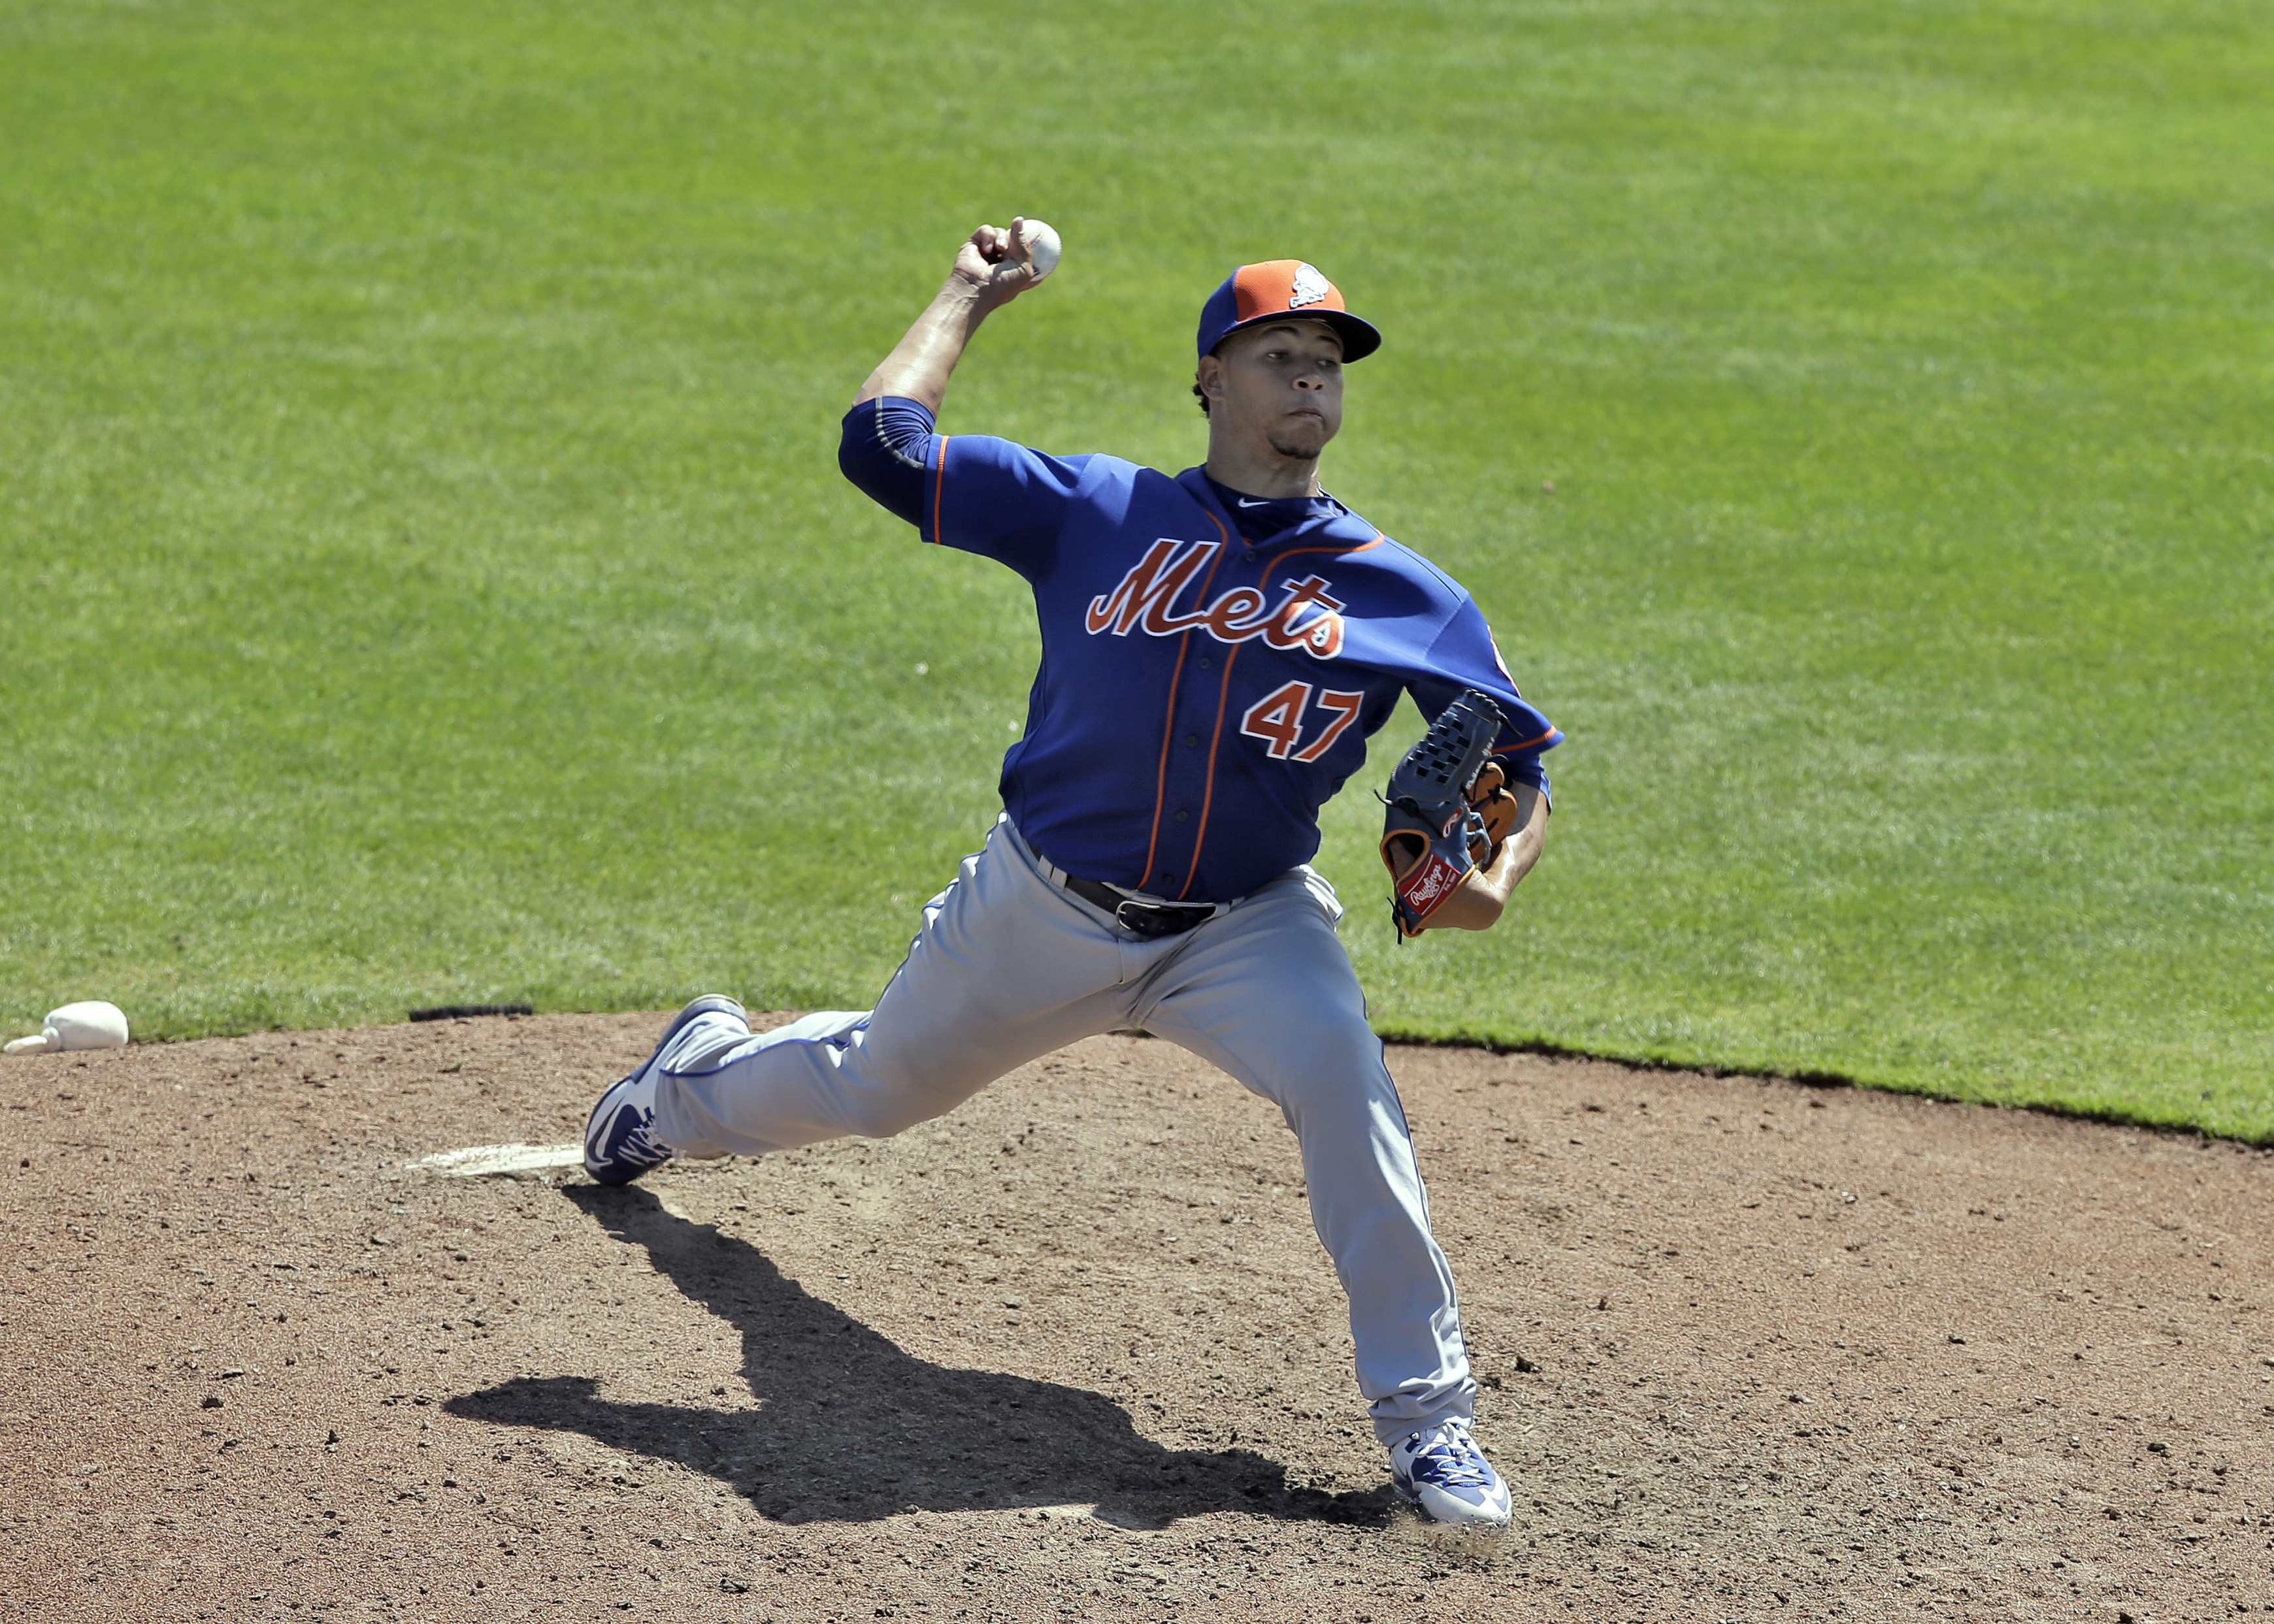 New York Mets relief pitcher Hansel Robles delivers to the Toronto Blue Jays during the seventh inning of a spring training baseball game Wednesday, March 23, 2016, in Dunedin, Fla. (AP Photo/Chris O'Meara)